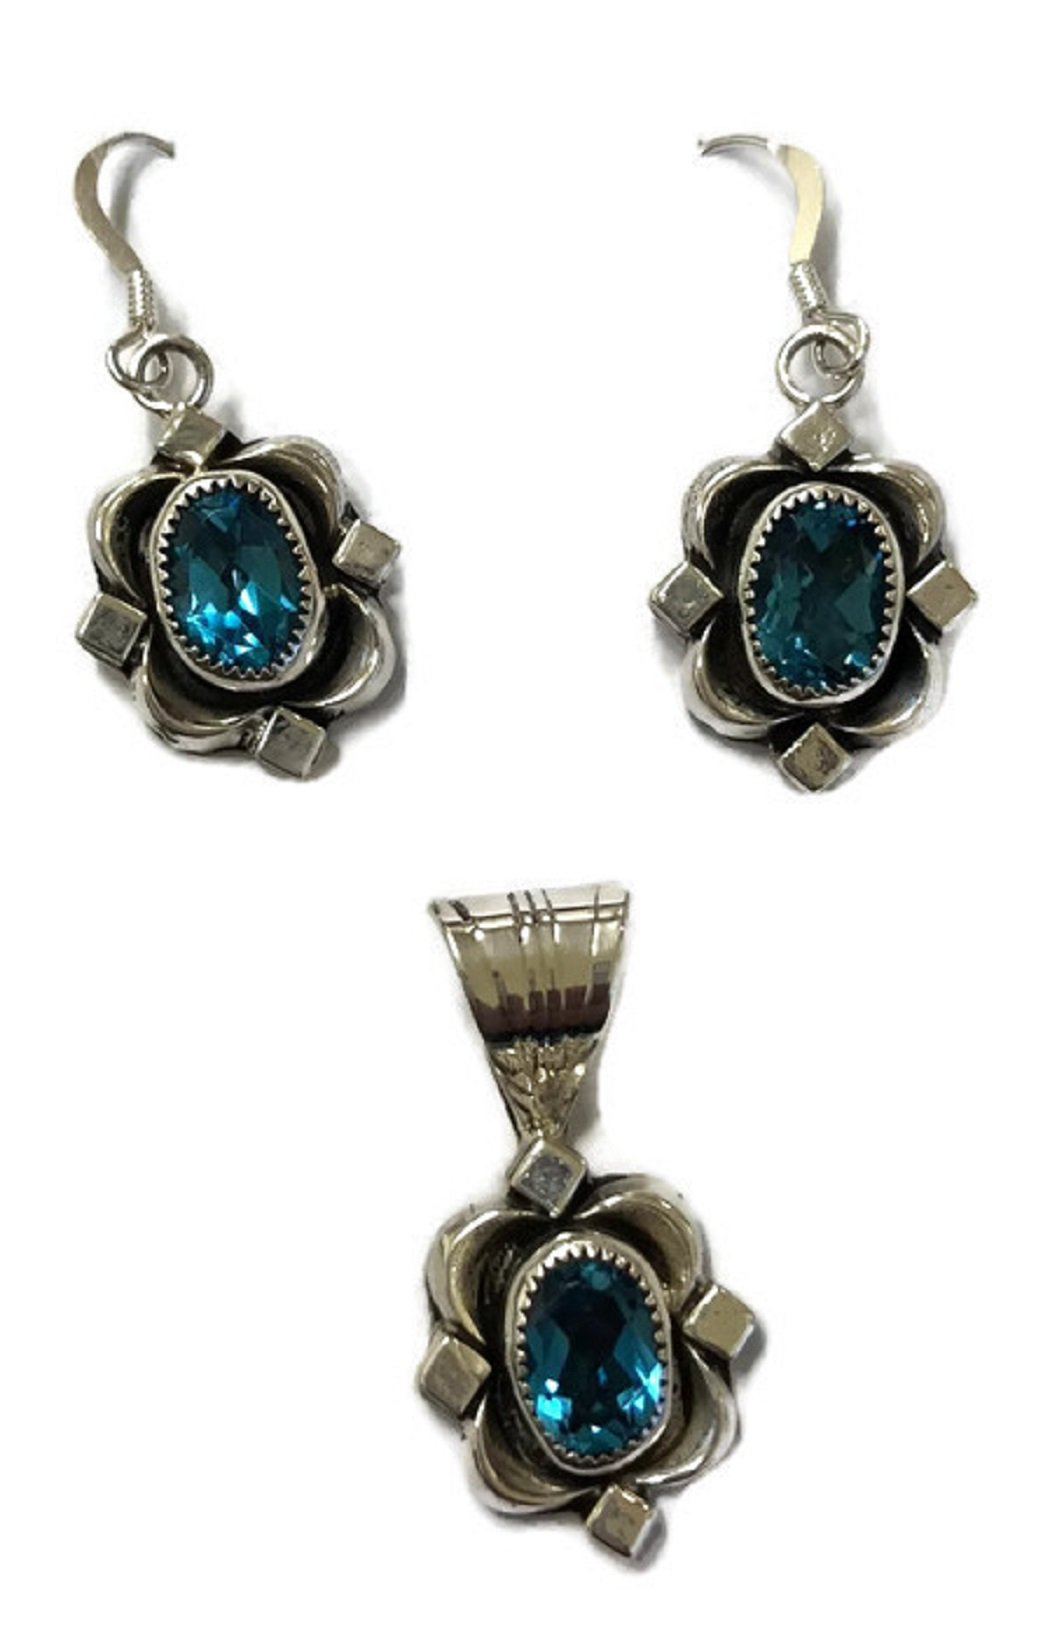 .925 Sterling Silver Native American Handmade Jewelry Blue Topaz Earring and Pendant Set